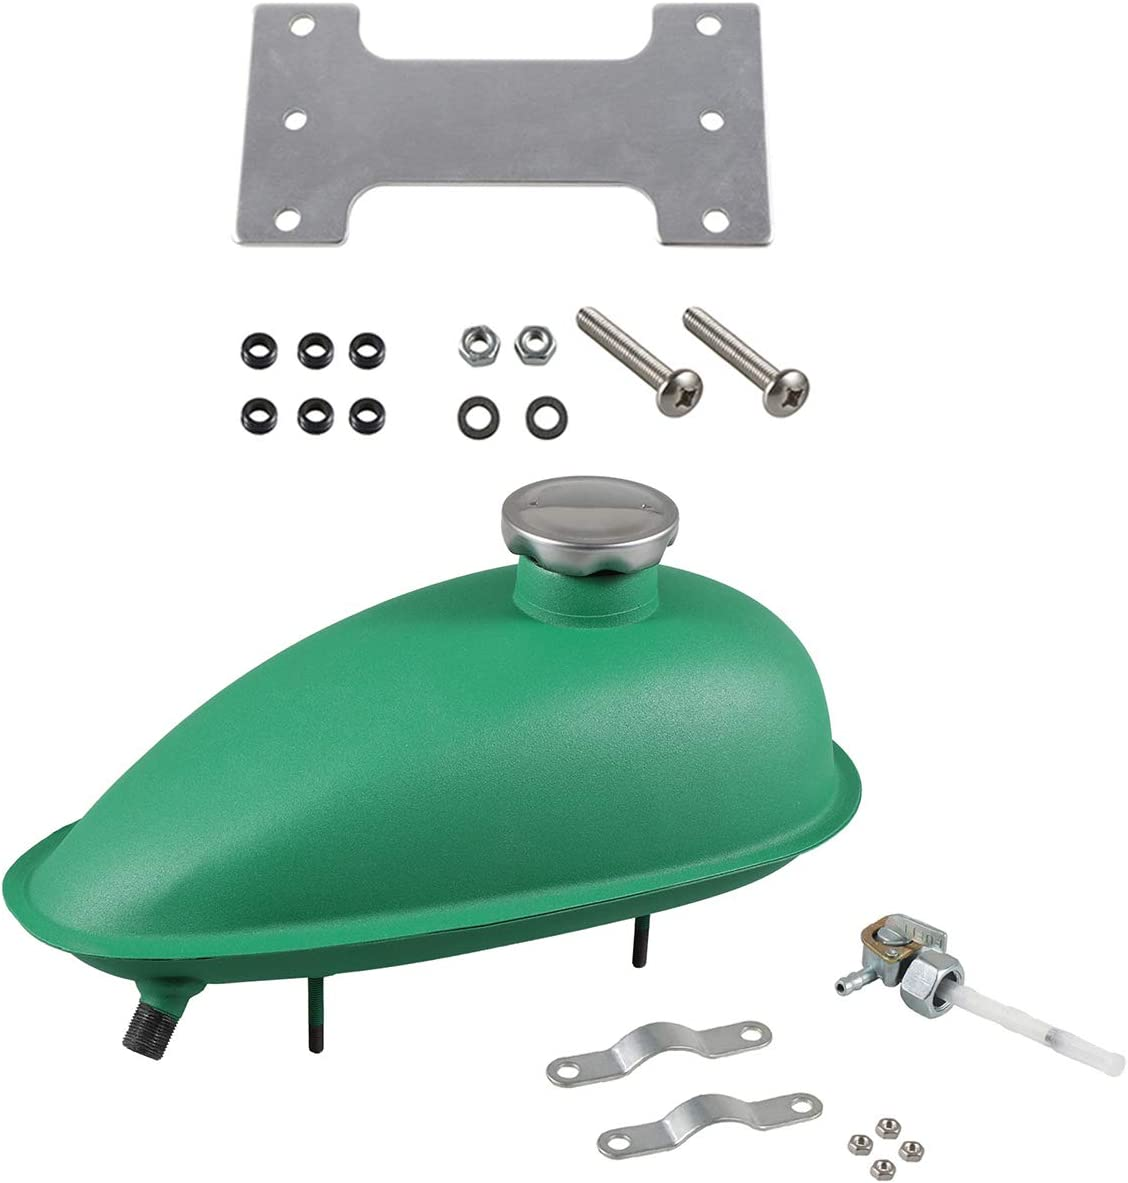 NorthTiger 2L Fuel Gas Tank Mounting Kit 80cc 60cc 66cc 49cc Motorized Bicycle Green Fuel Gas Tank+Mounting Kit